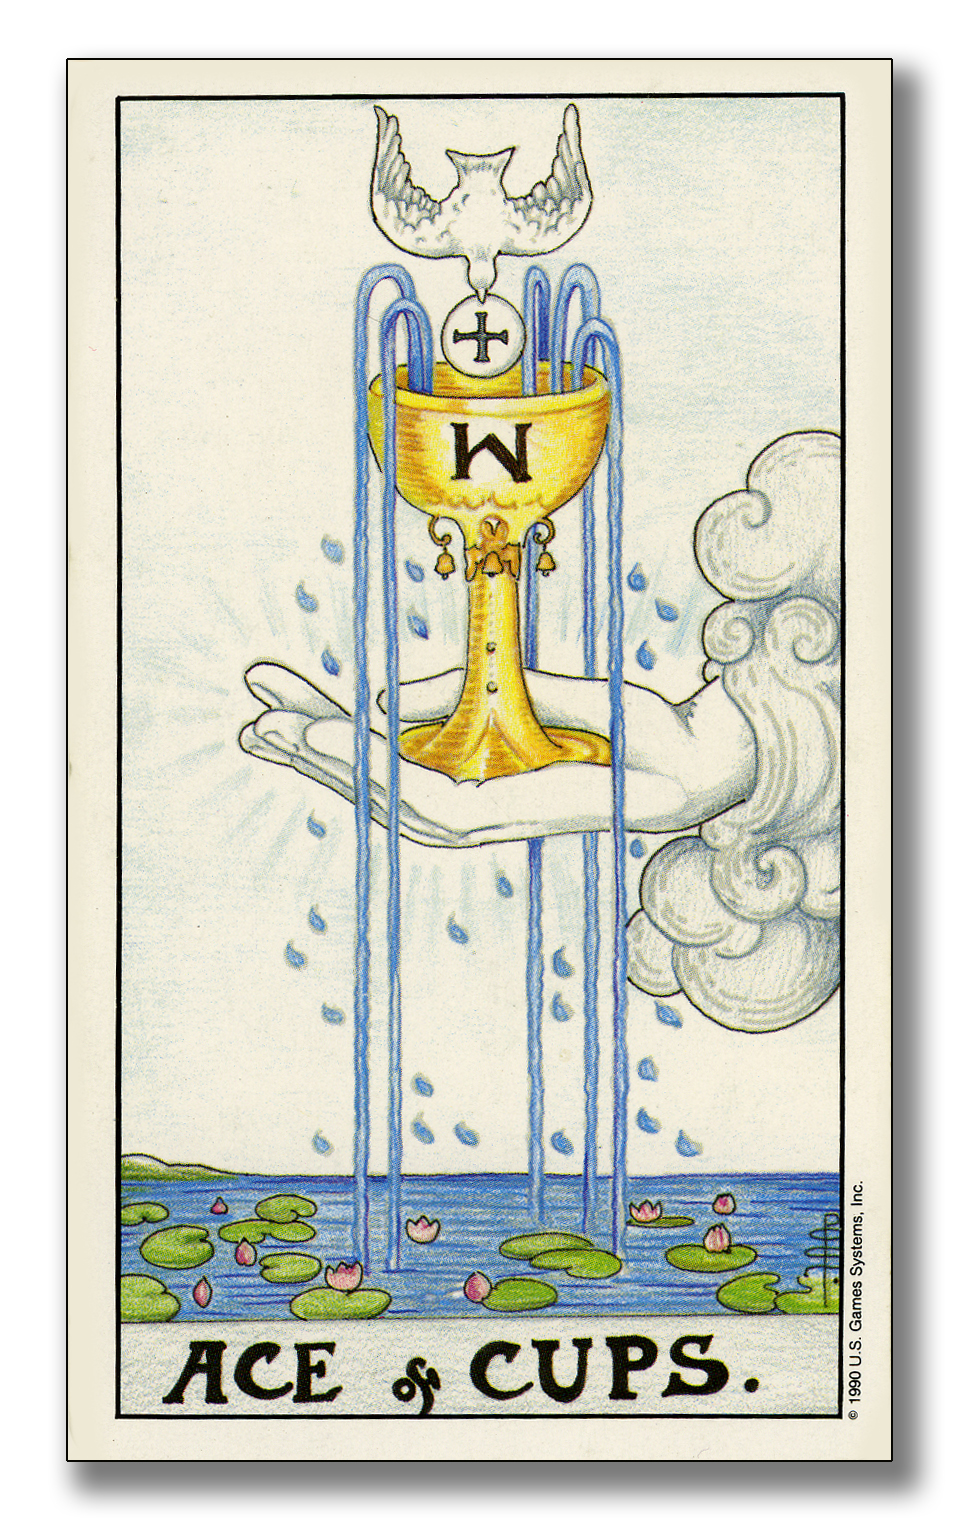 6 of cups and ace wands relationship